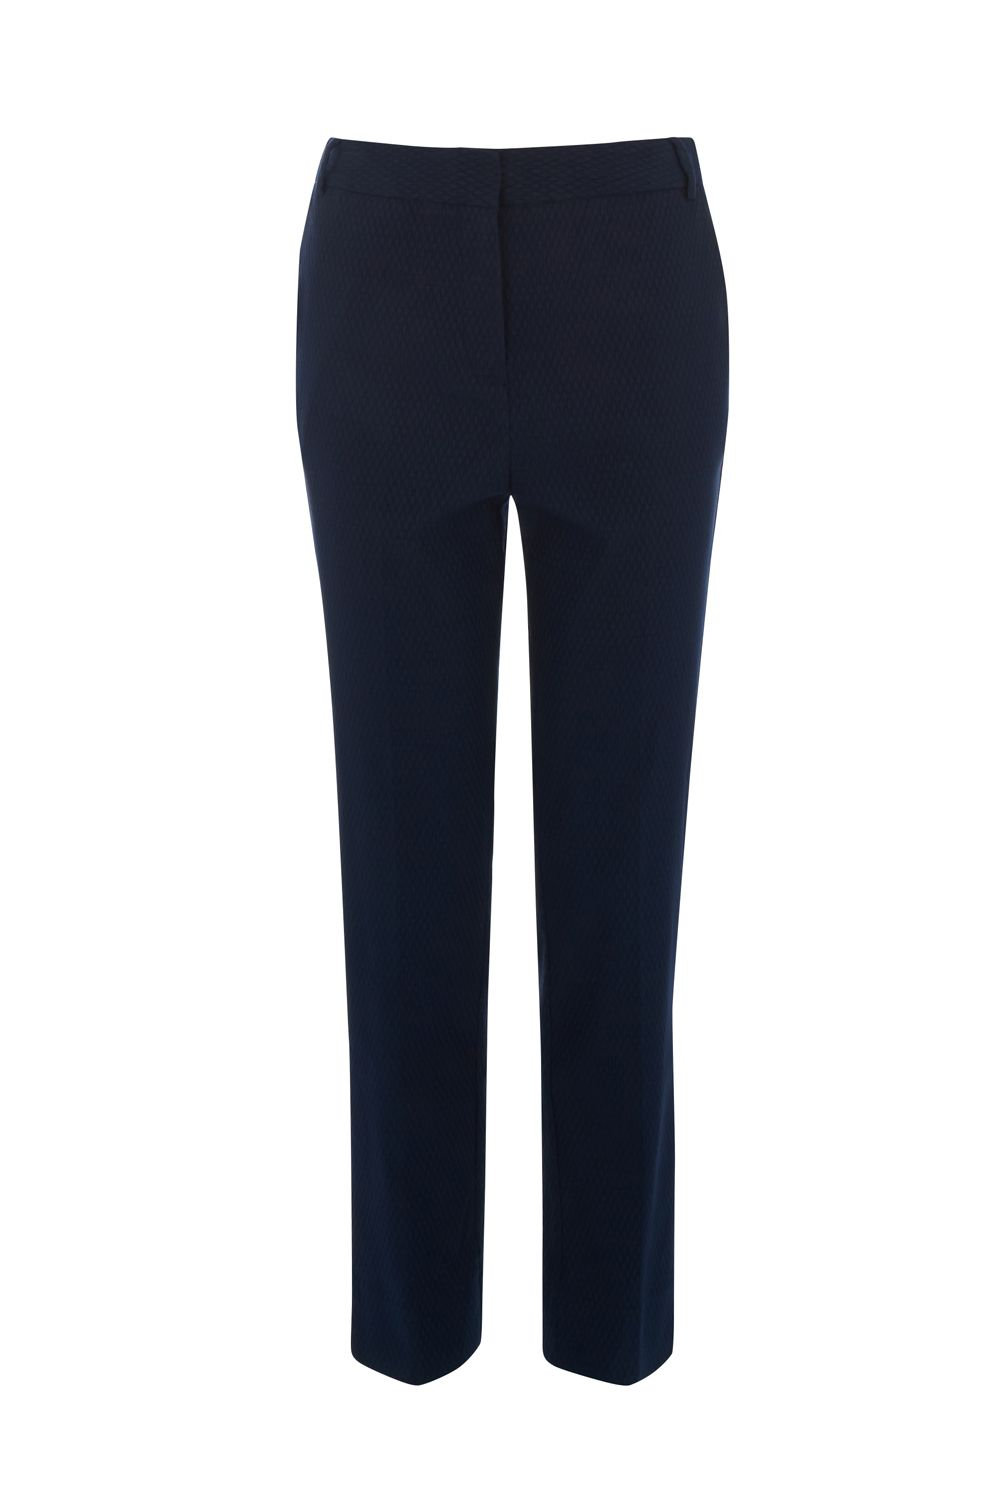 Warehouse Textured Slim Leg Trouser, Blue